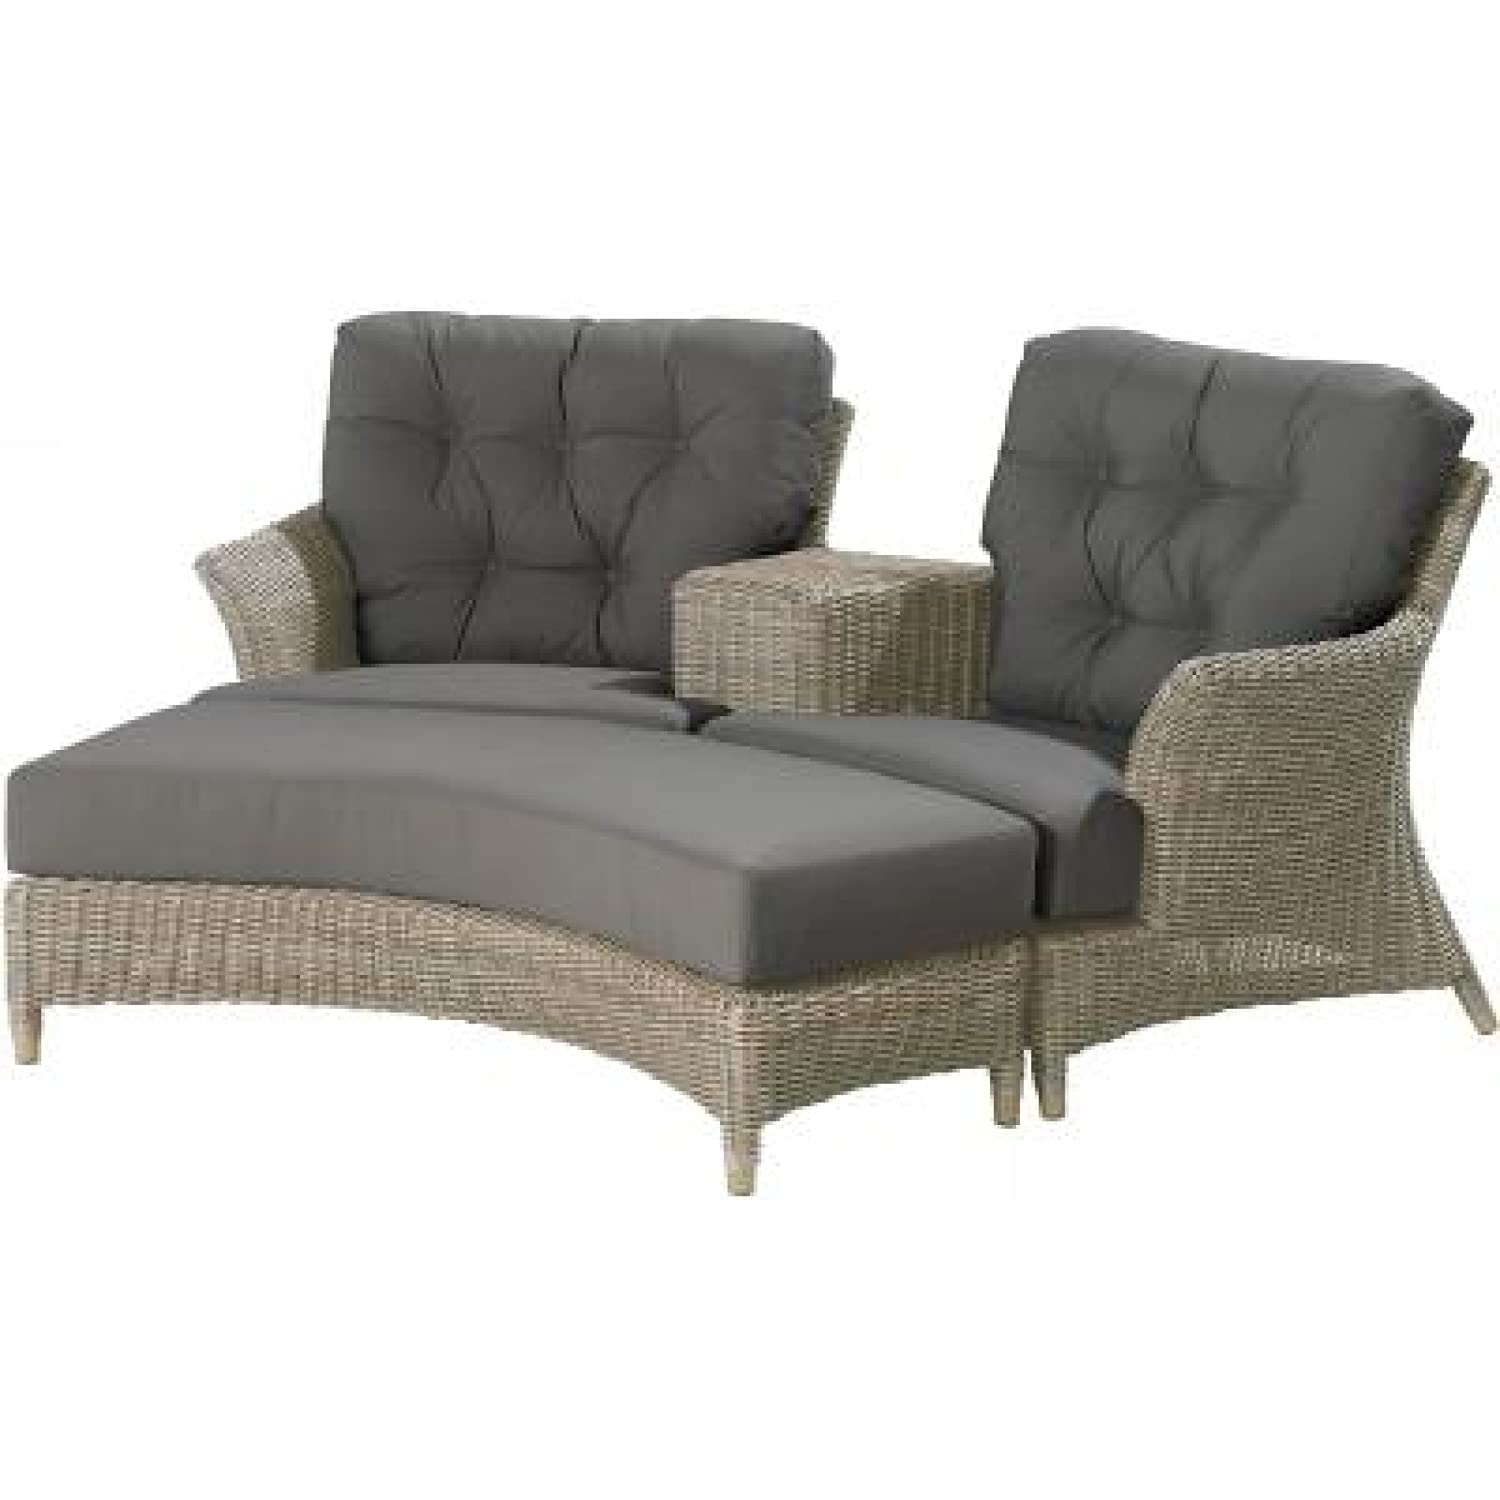 4Seasons Outdoor Valentine Loveseat Polyrattan pure günstig